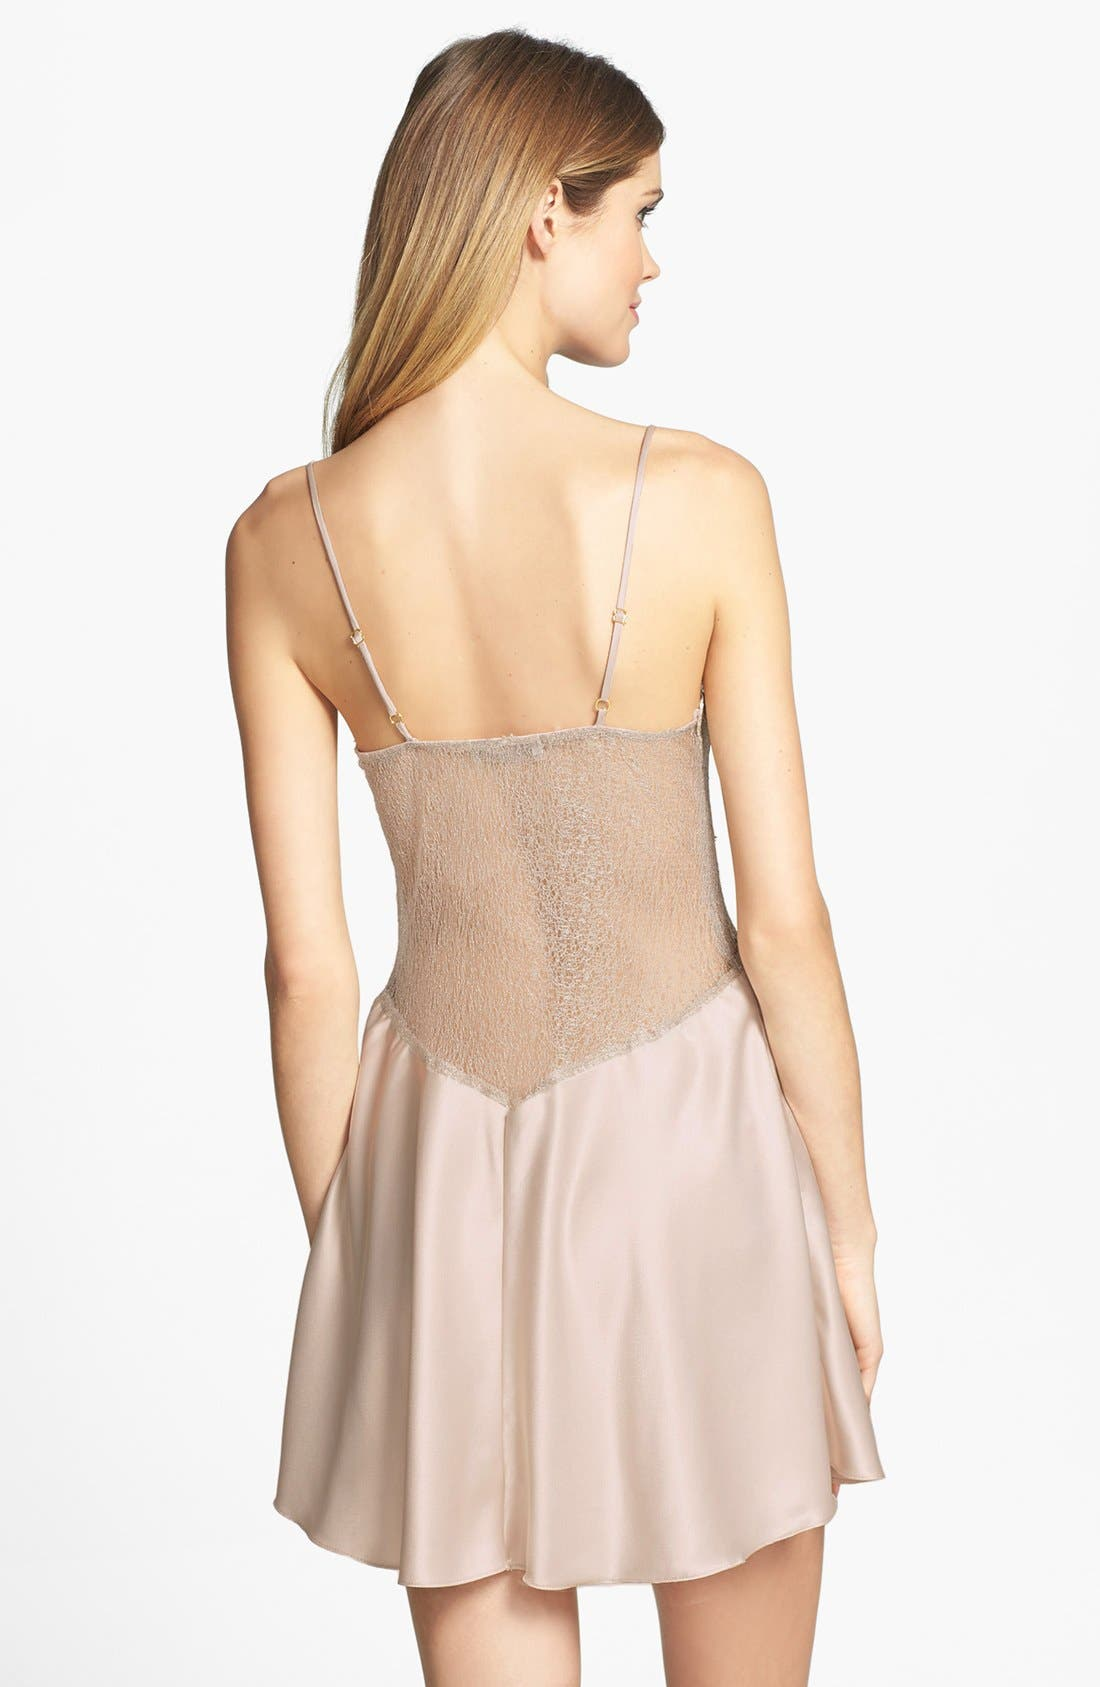 FLORA NIKROOZ, Showstopper Chemise, Alternate thumbnail 7, color, CHAMPAGNE